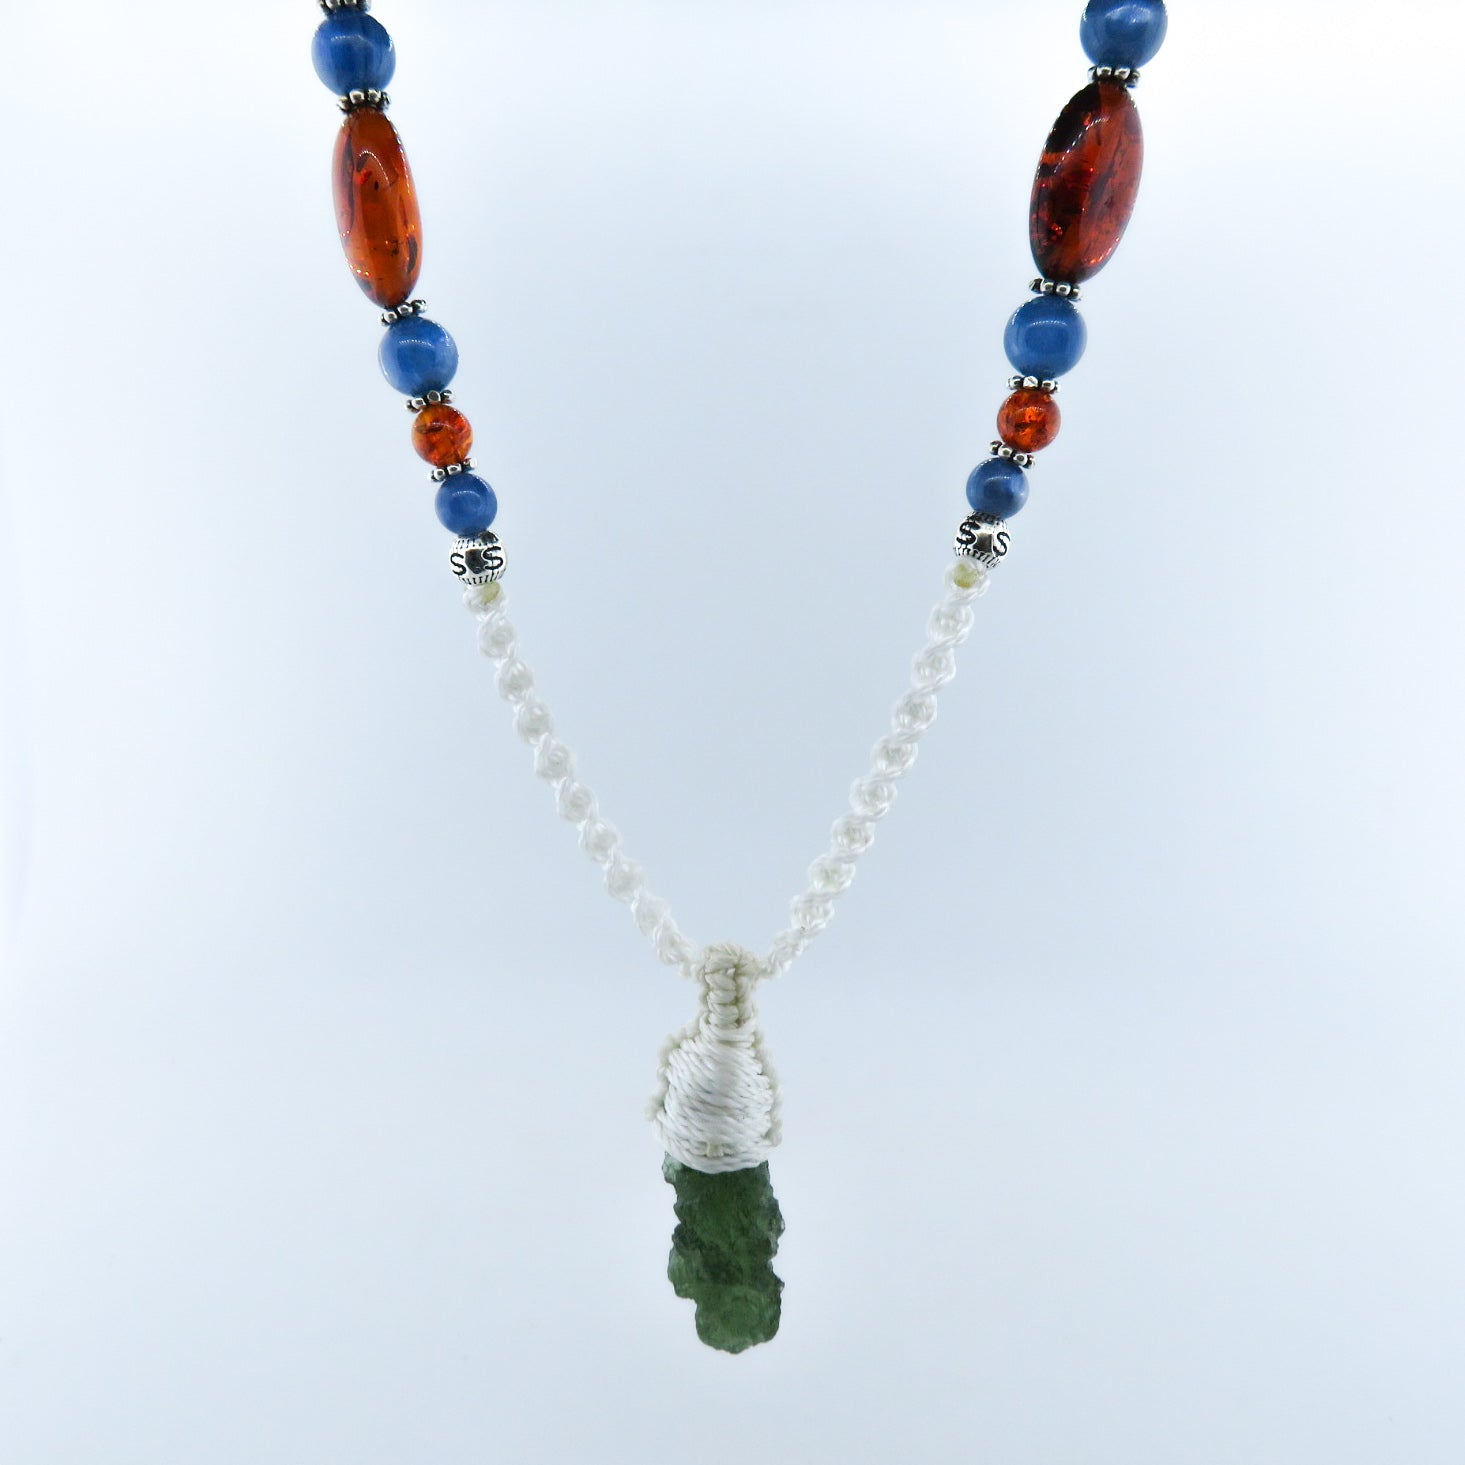 Moldavite (Meteorite) Mala with Amber, Kyanite and Silver Beads